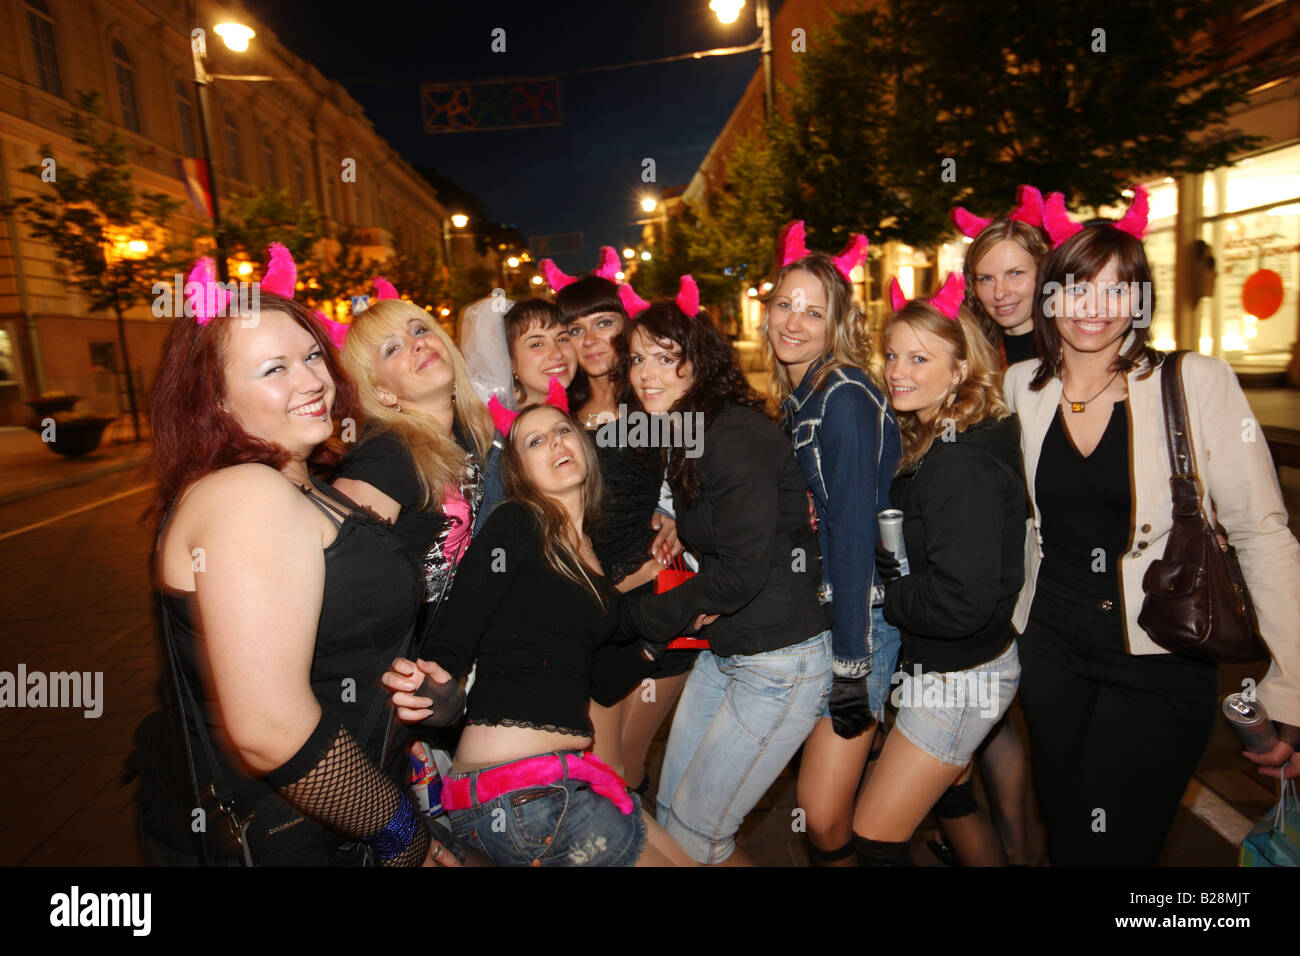 LTU Lithuania Capital Vilnius Bachelor Party of young women - Stock Image